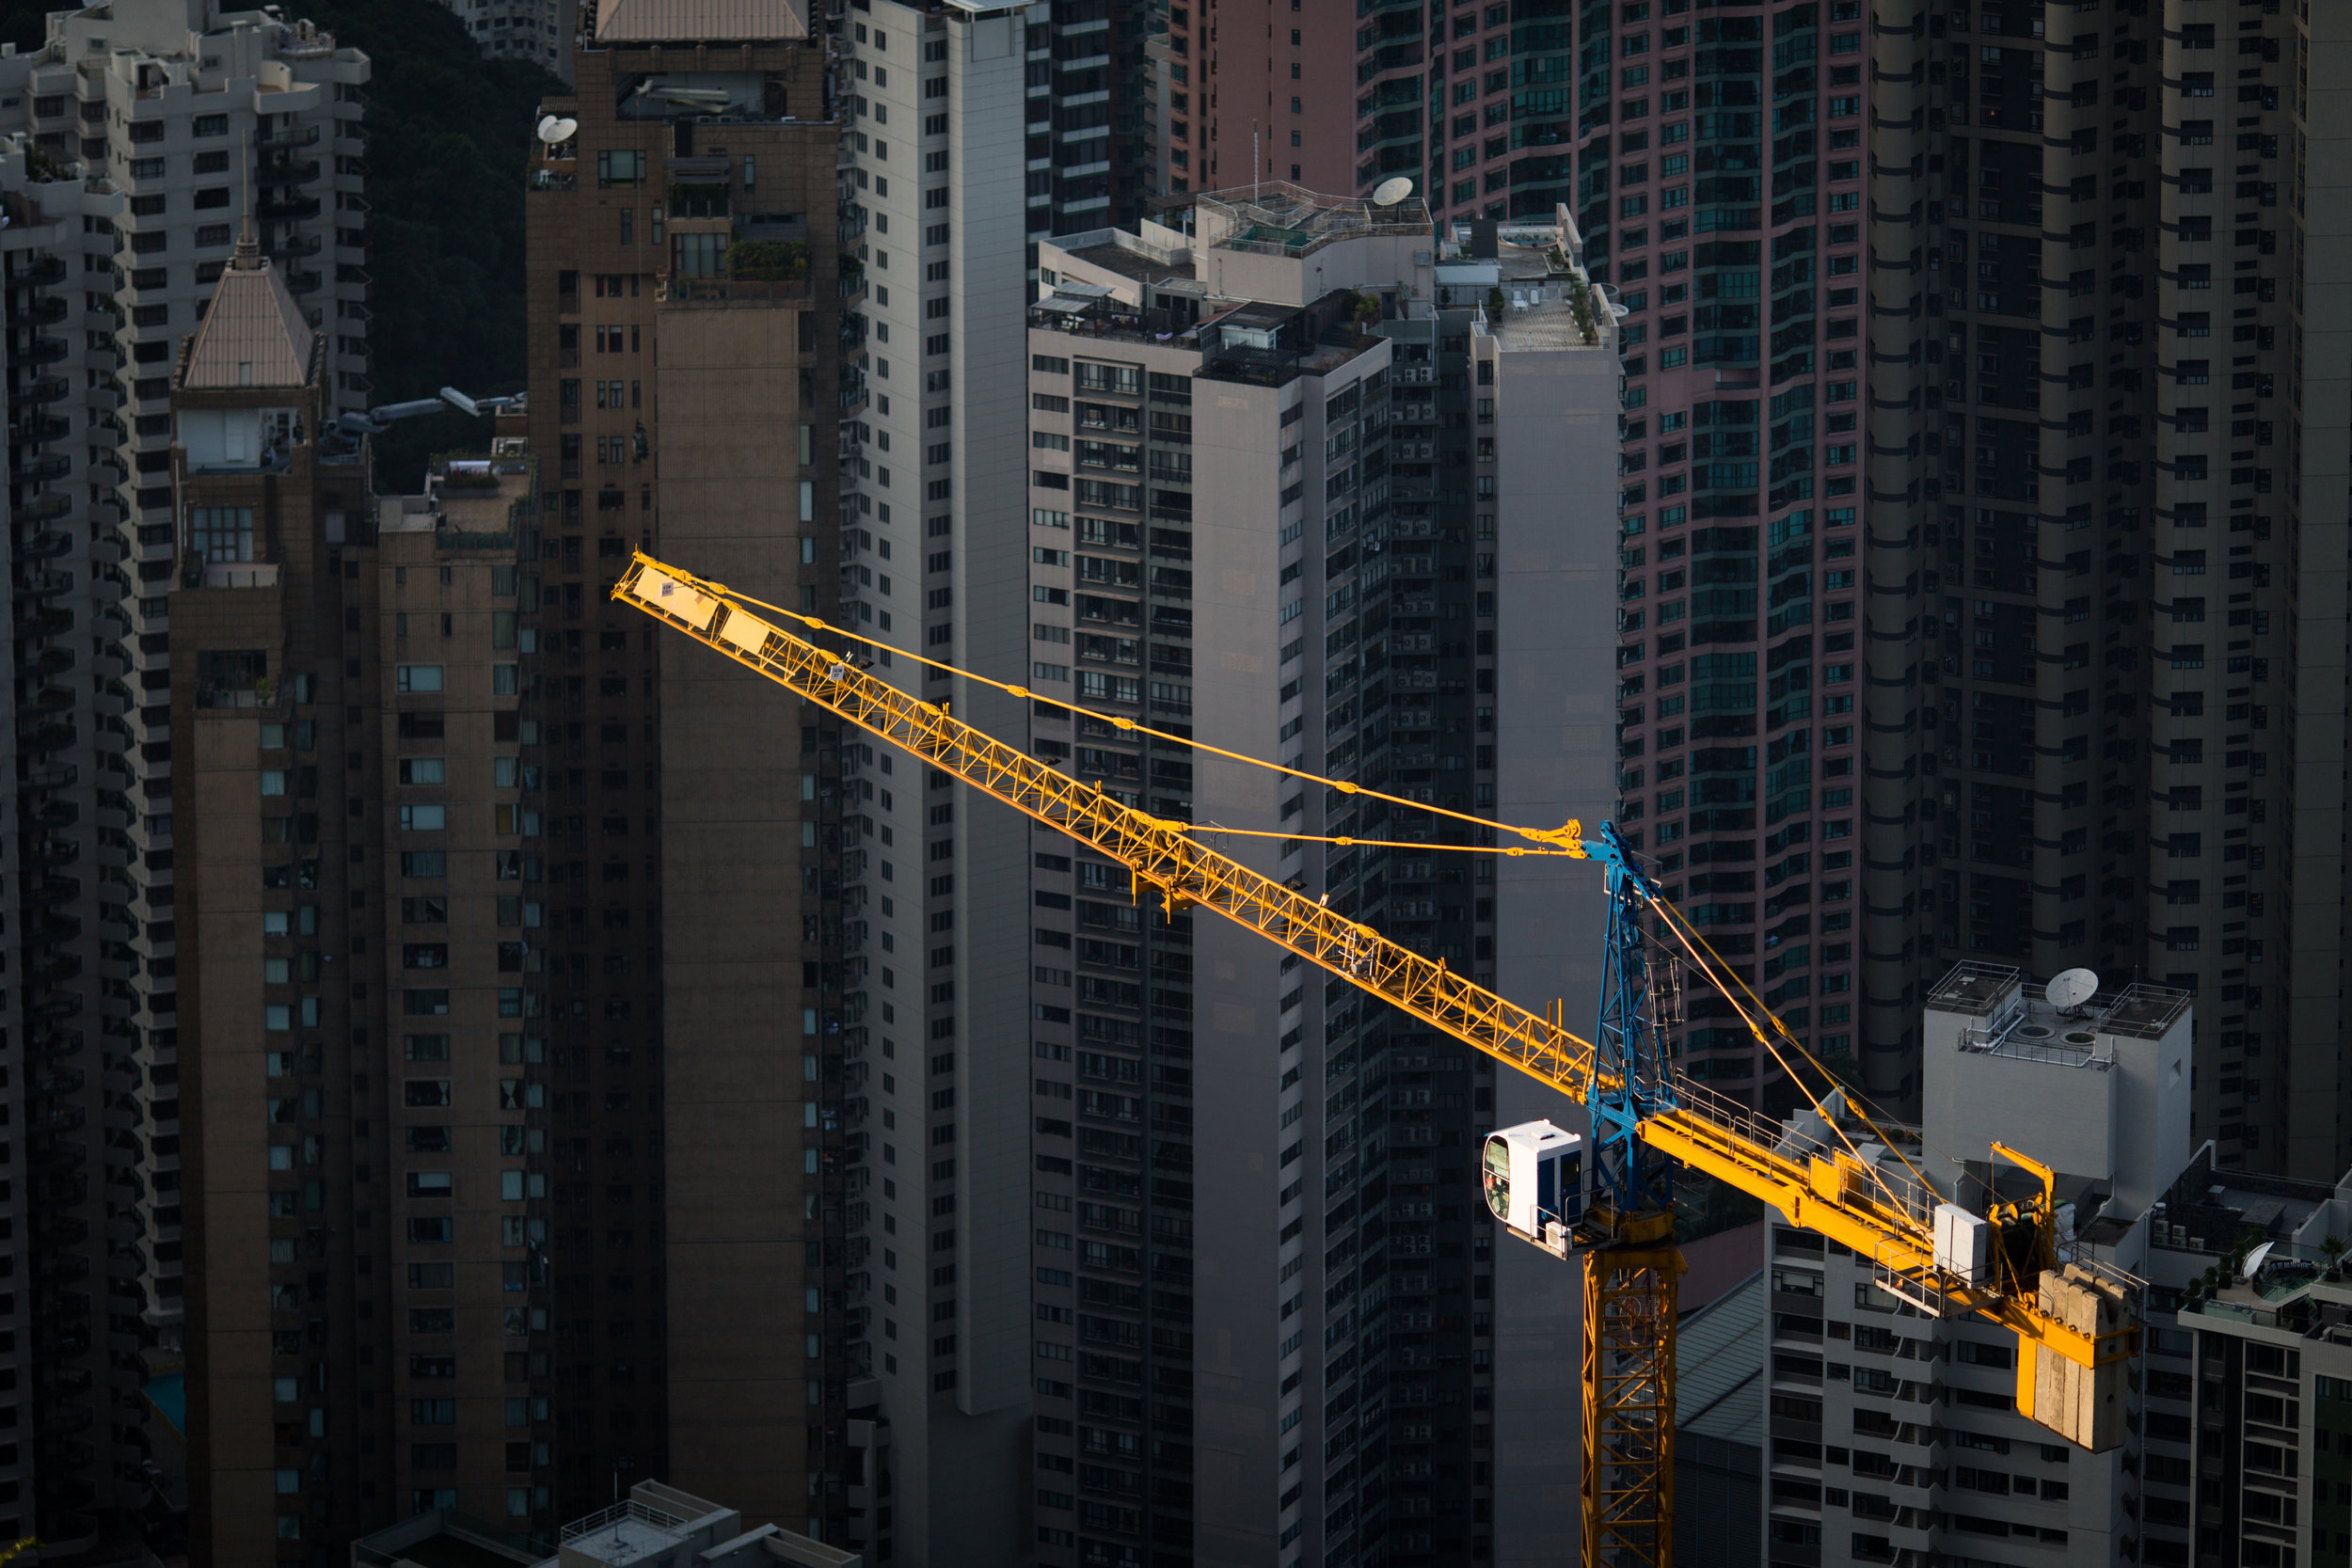 A yellow construction crane in sharp contrast to high rises below in Hong Kong